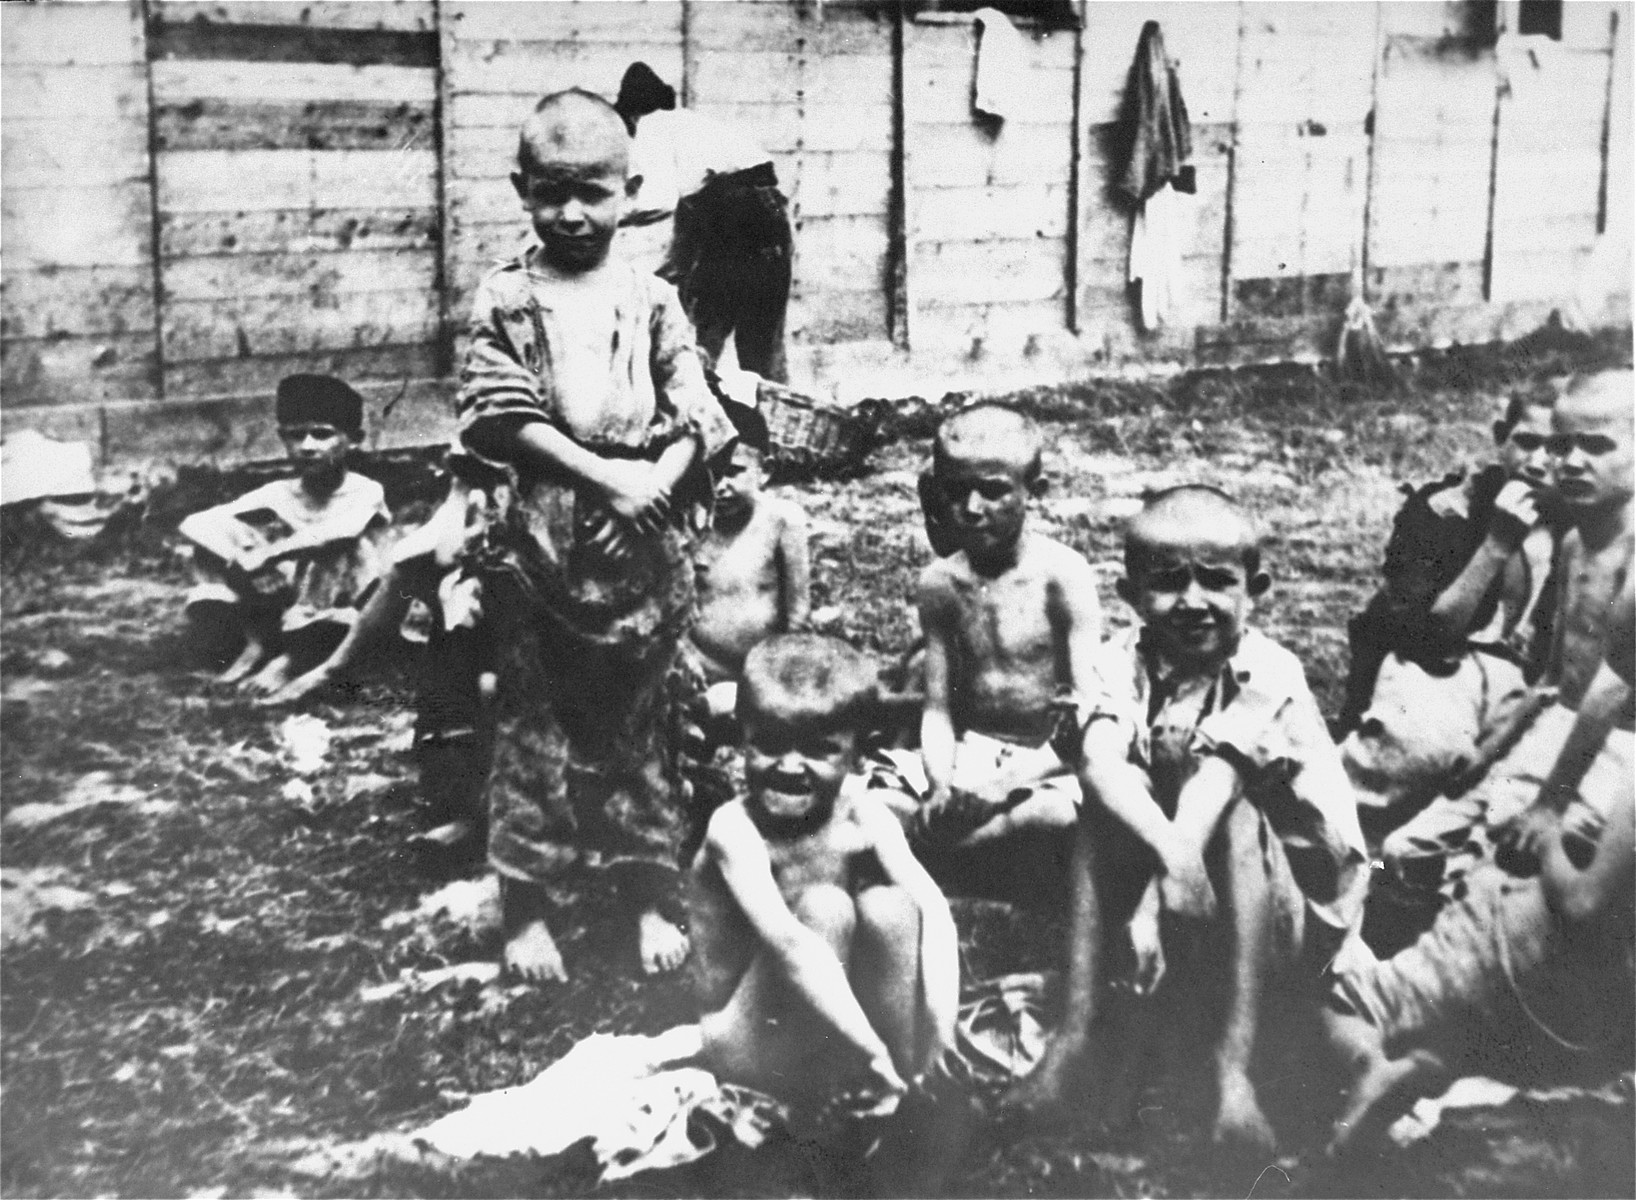 Emaciated Serbian children from the Kozara region sit outside in the Stara Gradiska concentration camp.